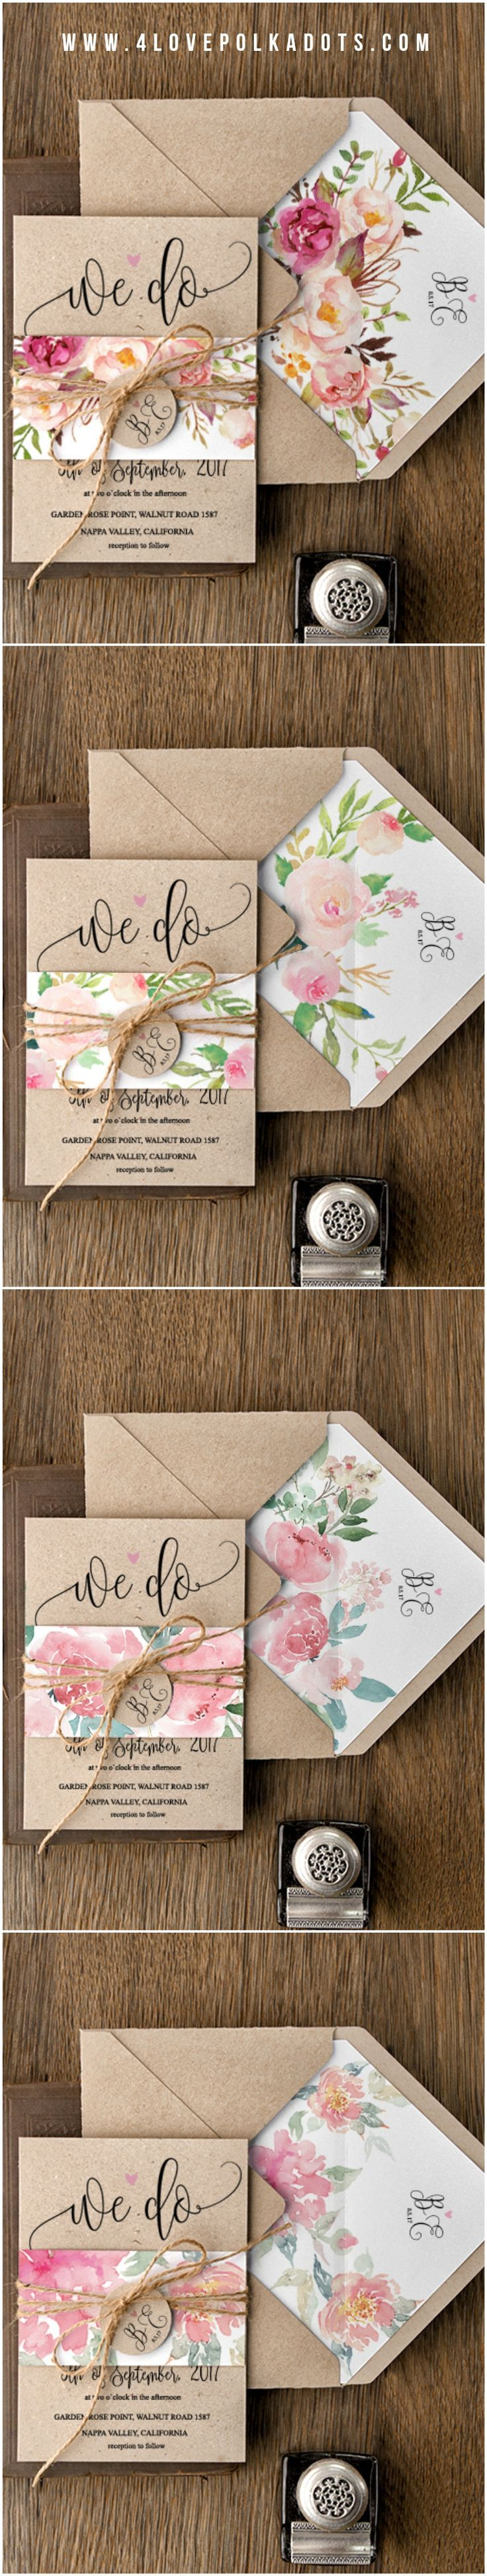 how to address couples on wedding invitations%0A Spring wedding couples  take a look at this beautiful floral eco wedding  stationery suite by